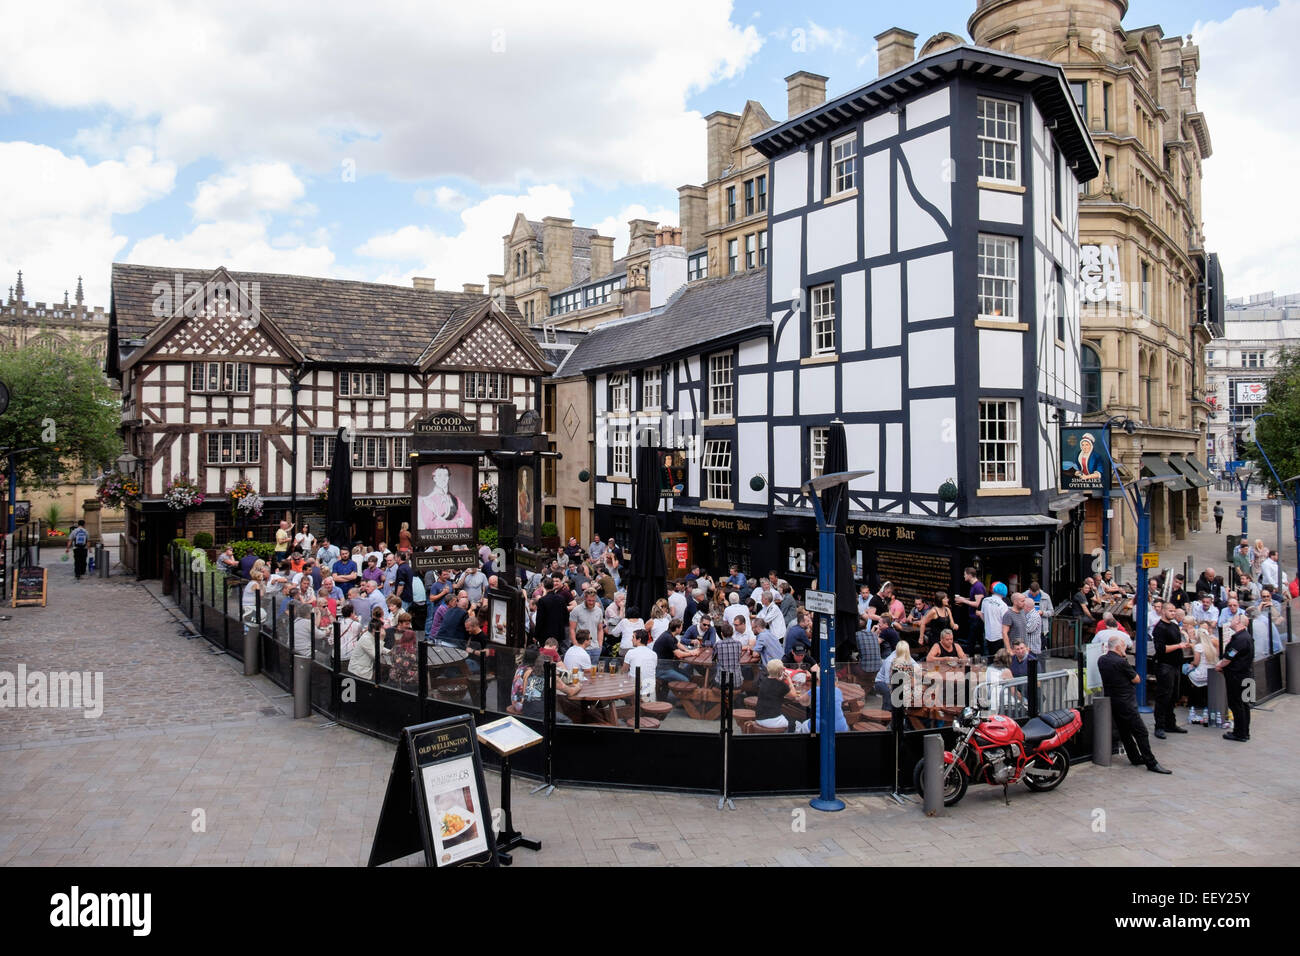 Busy 16th century timbered The Old Wellington Inn 1552 urban pub with a crowd of people in beer garden. Manchester, - Stock Image